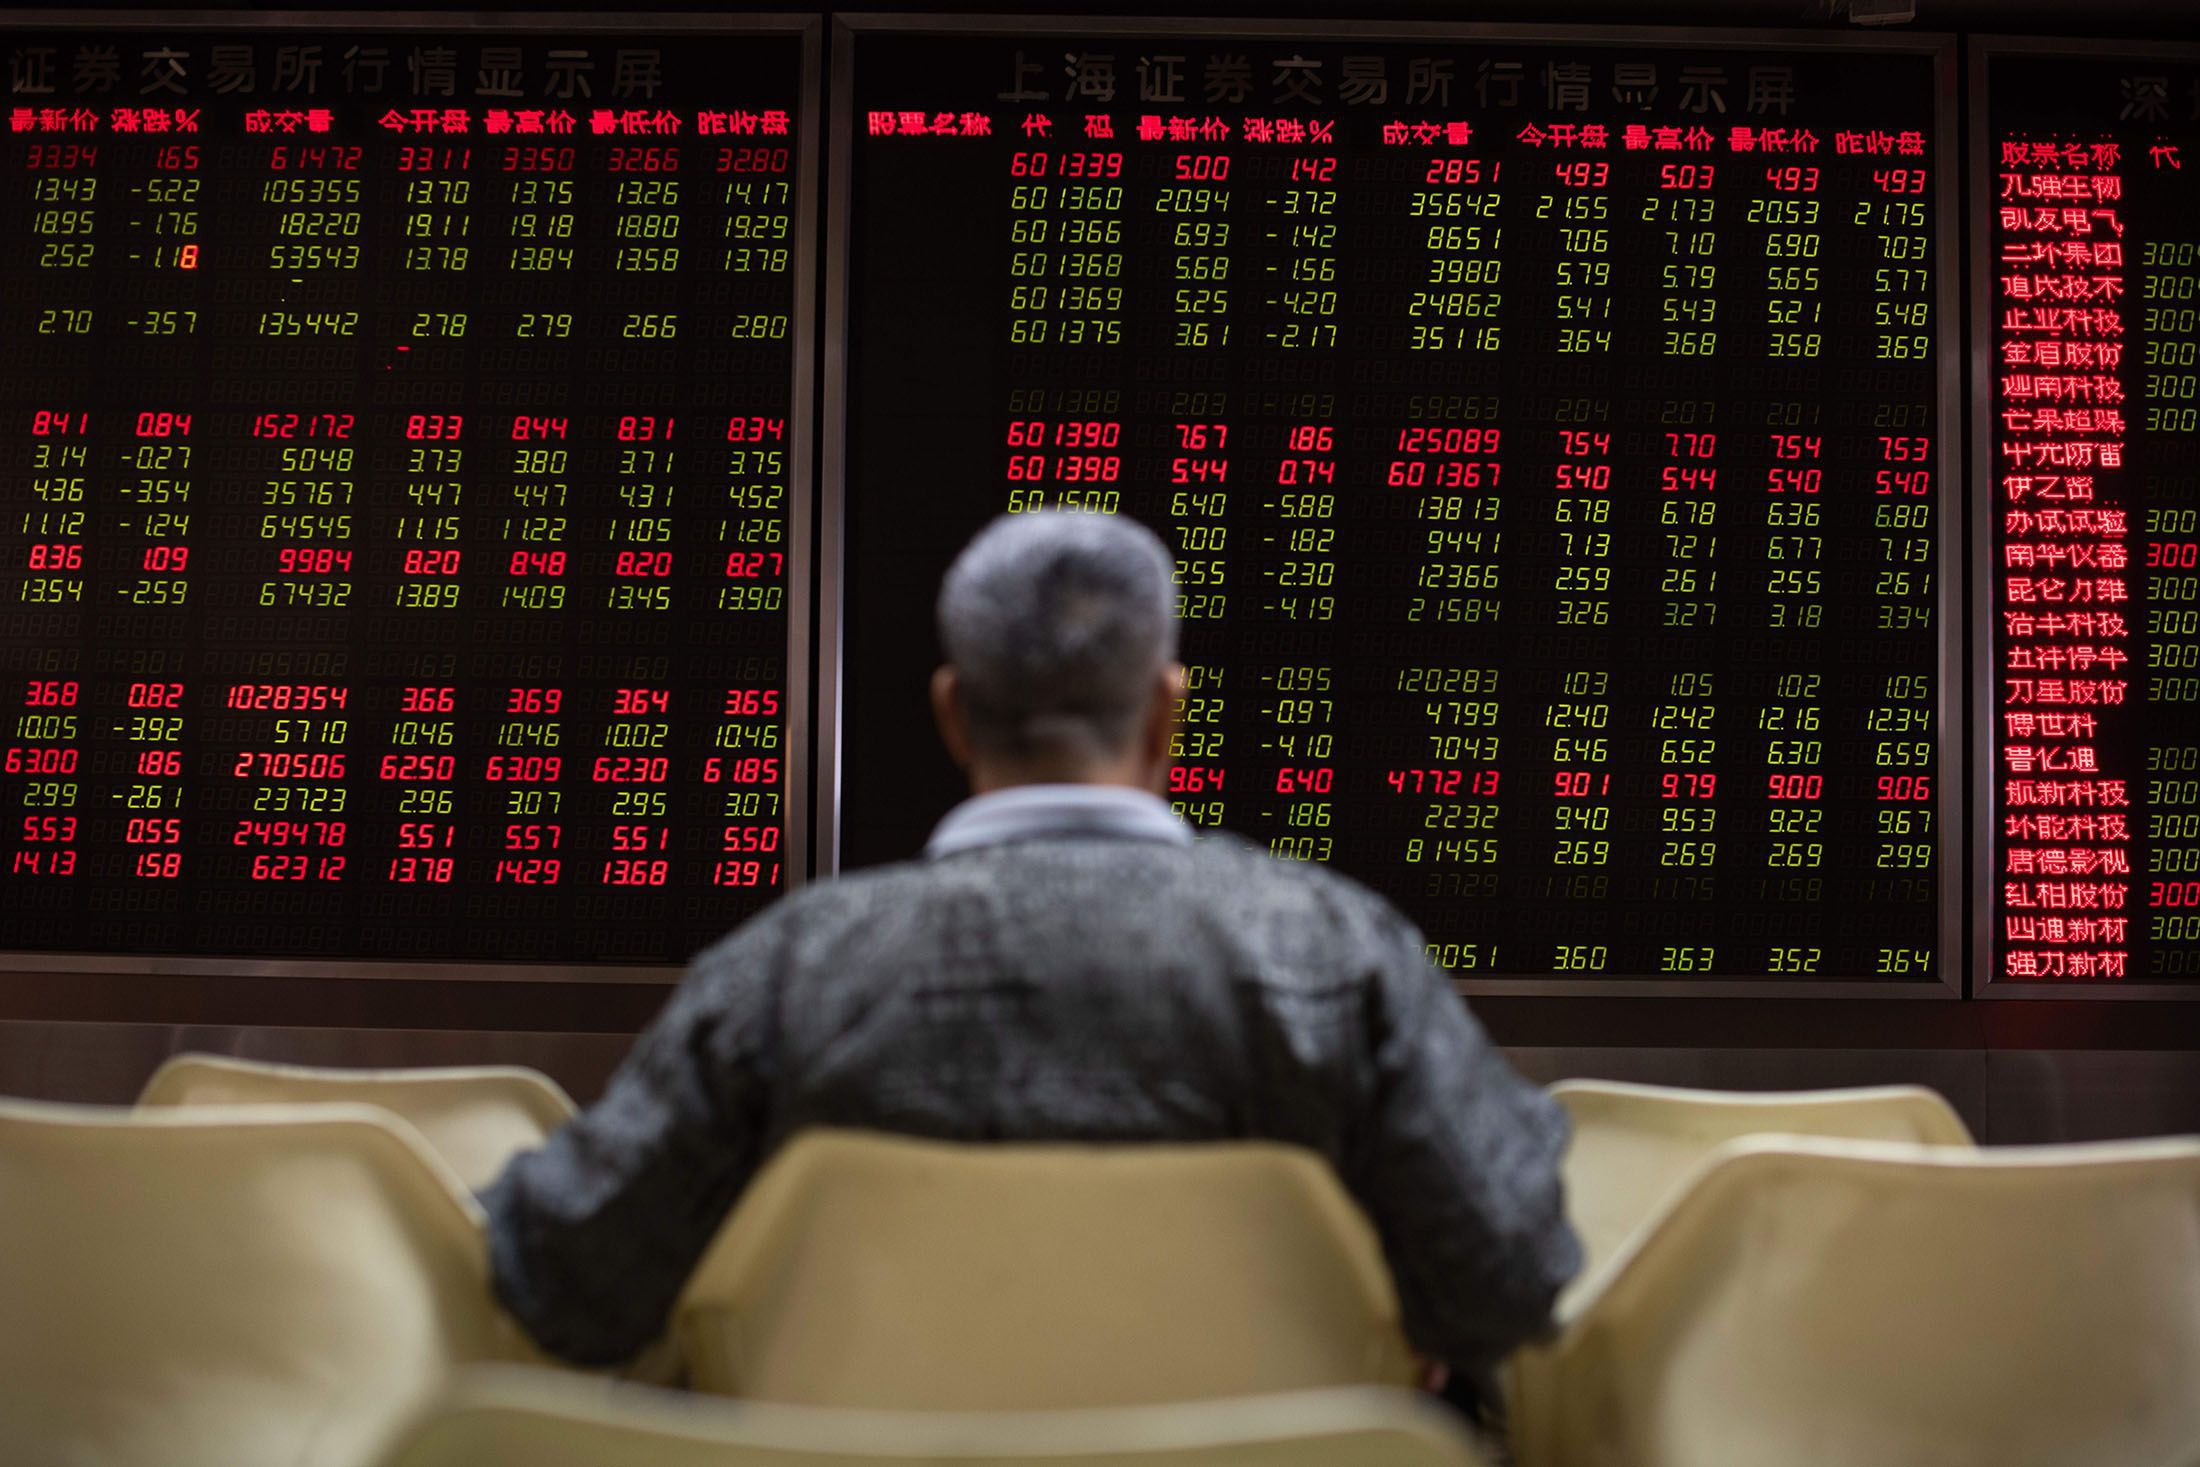 An investor looks at stock price movements on screens at a securities company in Beijing. Photographer: Nicolas Asfouri/AFP/Getty Images